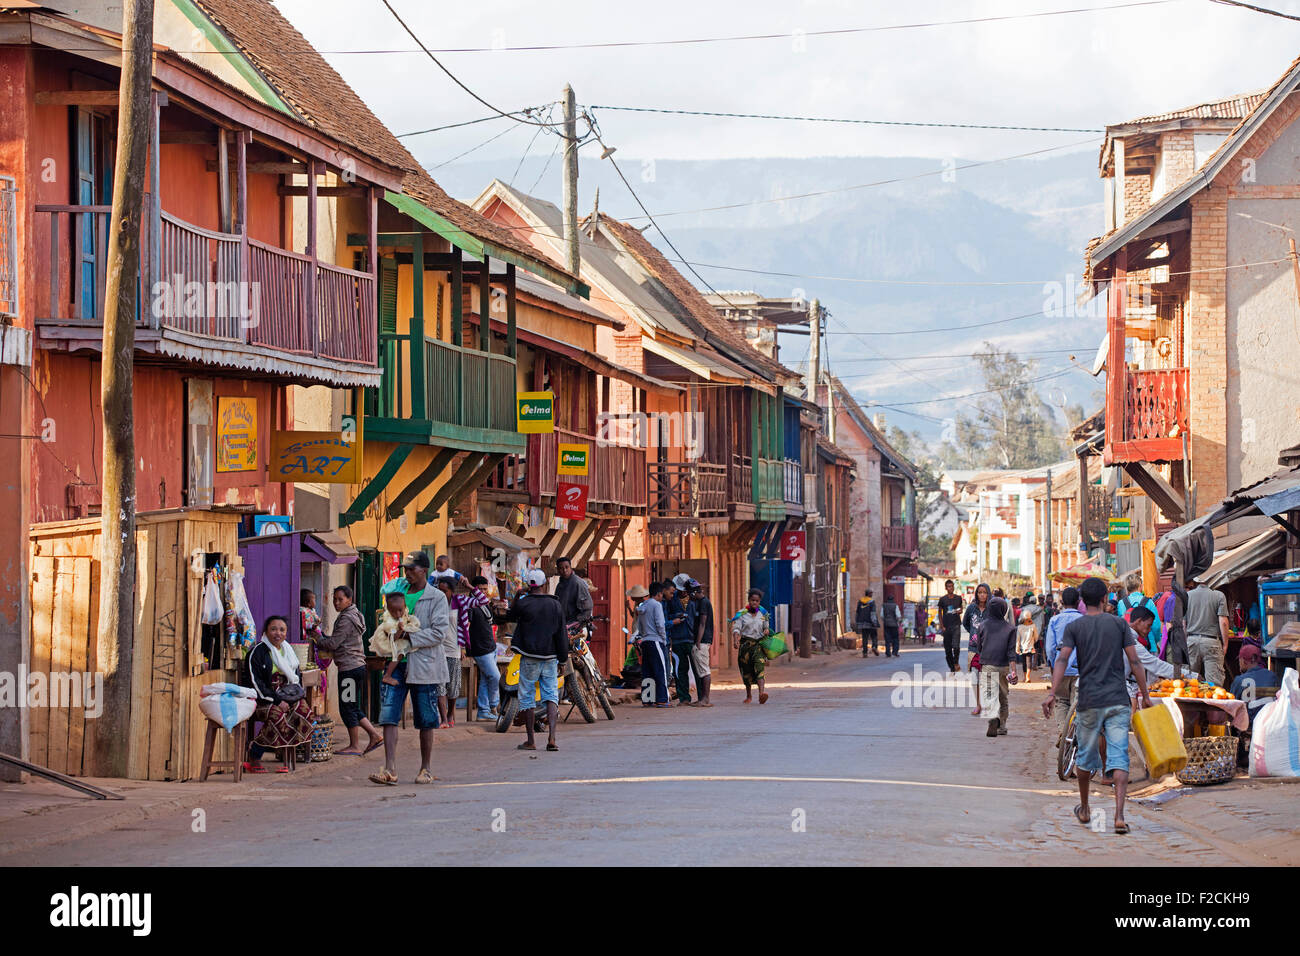 Malagasy locals shopping in the colonial main street of the city Ambalavao, Haute Matsiatra, Madagascar, Southeast - Stock Image